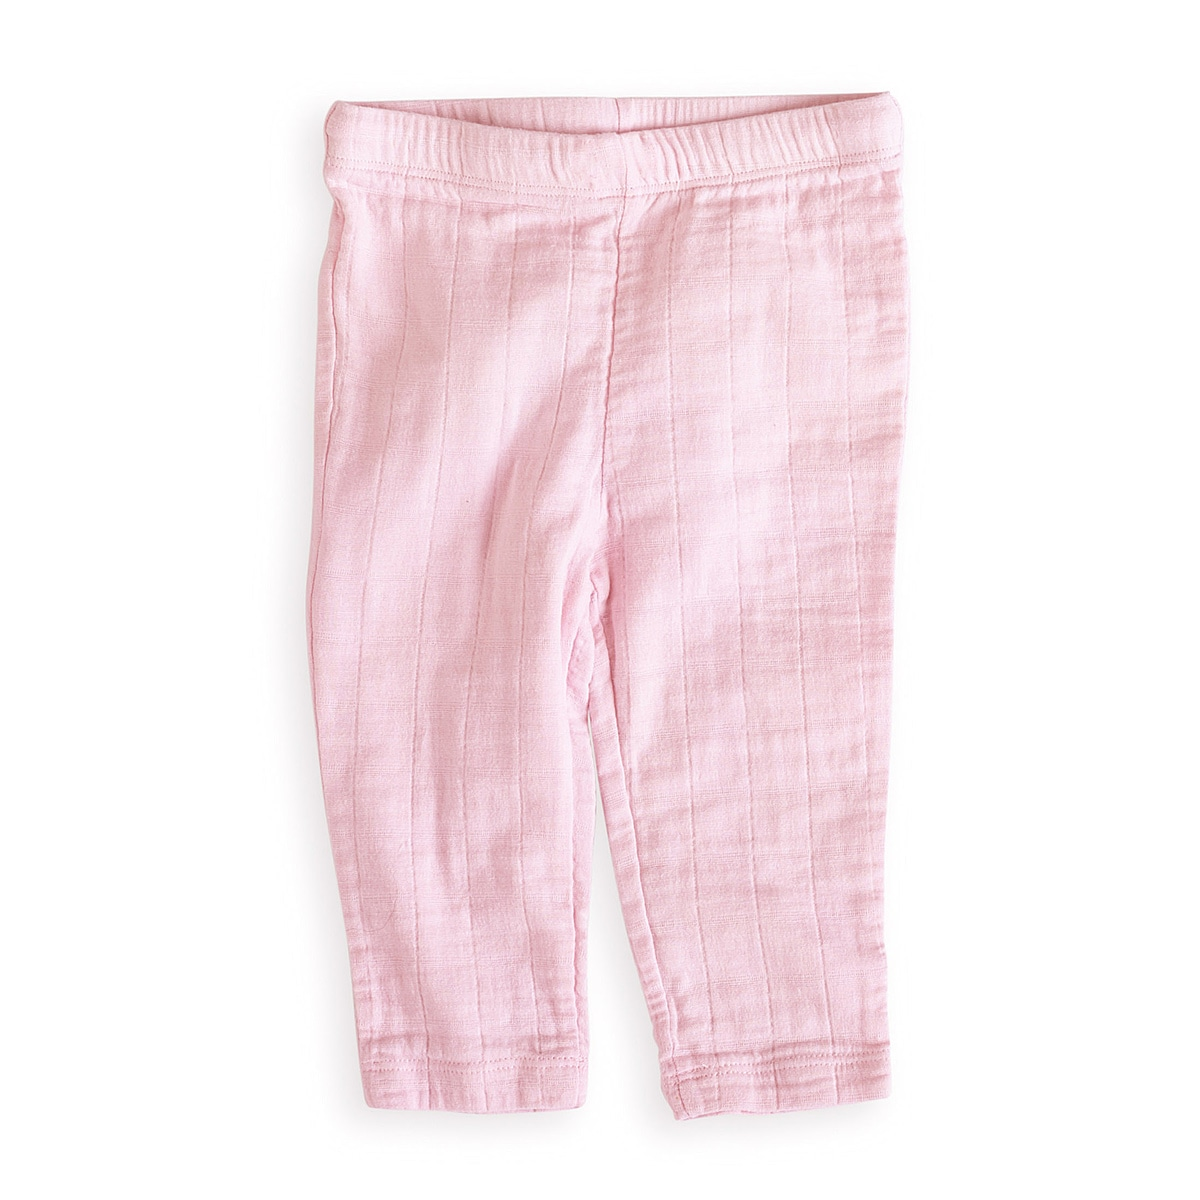 aden + anais Girls 3-6 Months Lovely Pink Muslin Pants